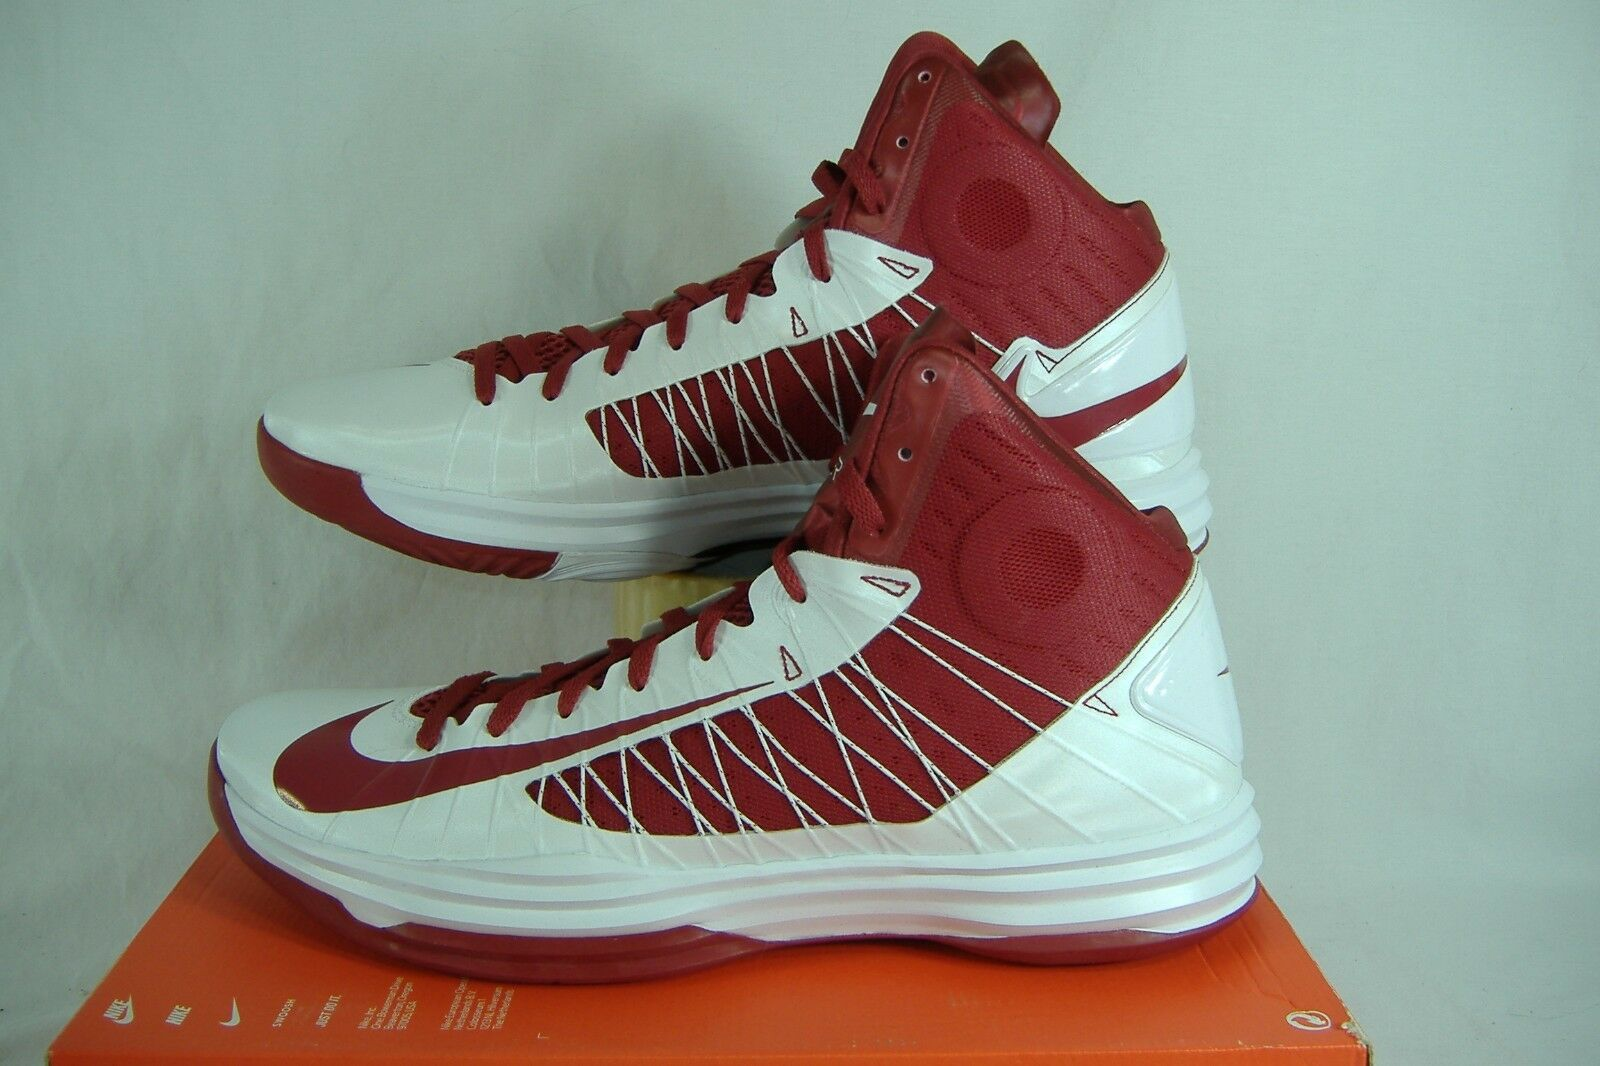 New Mens 18 NIKE Hyperdunk TB White Crimson Red High Top Basketball Shoes